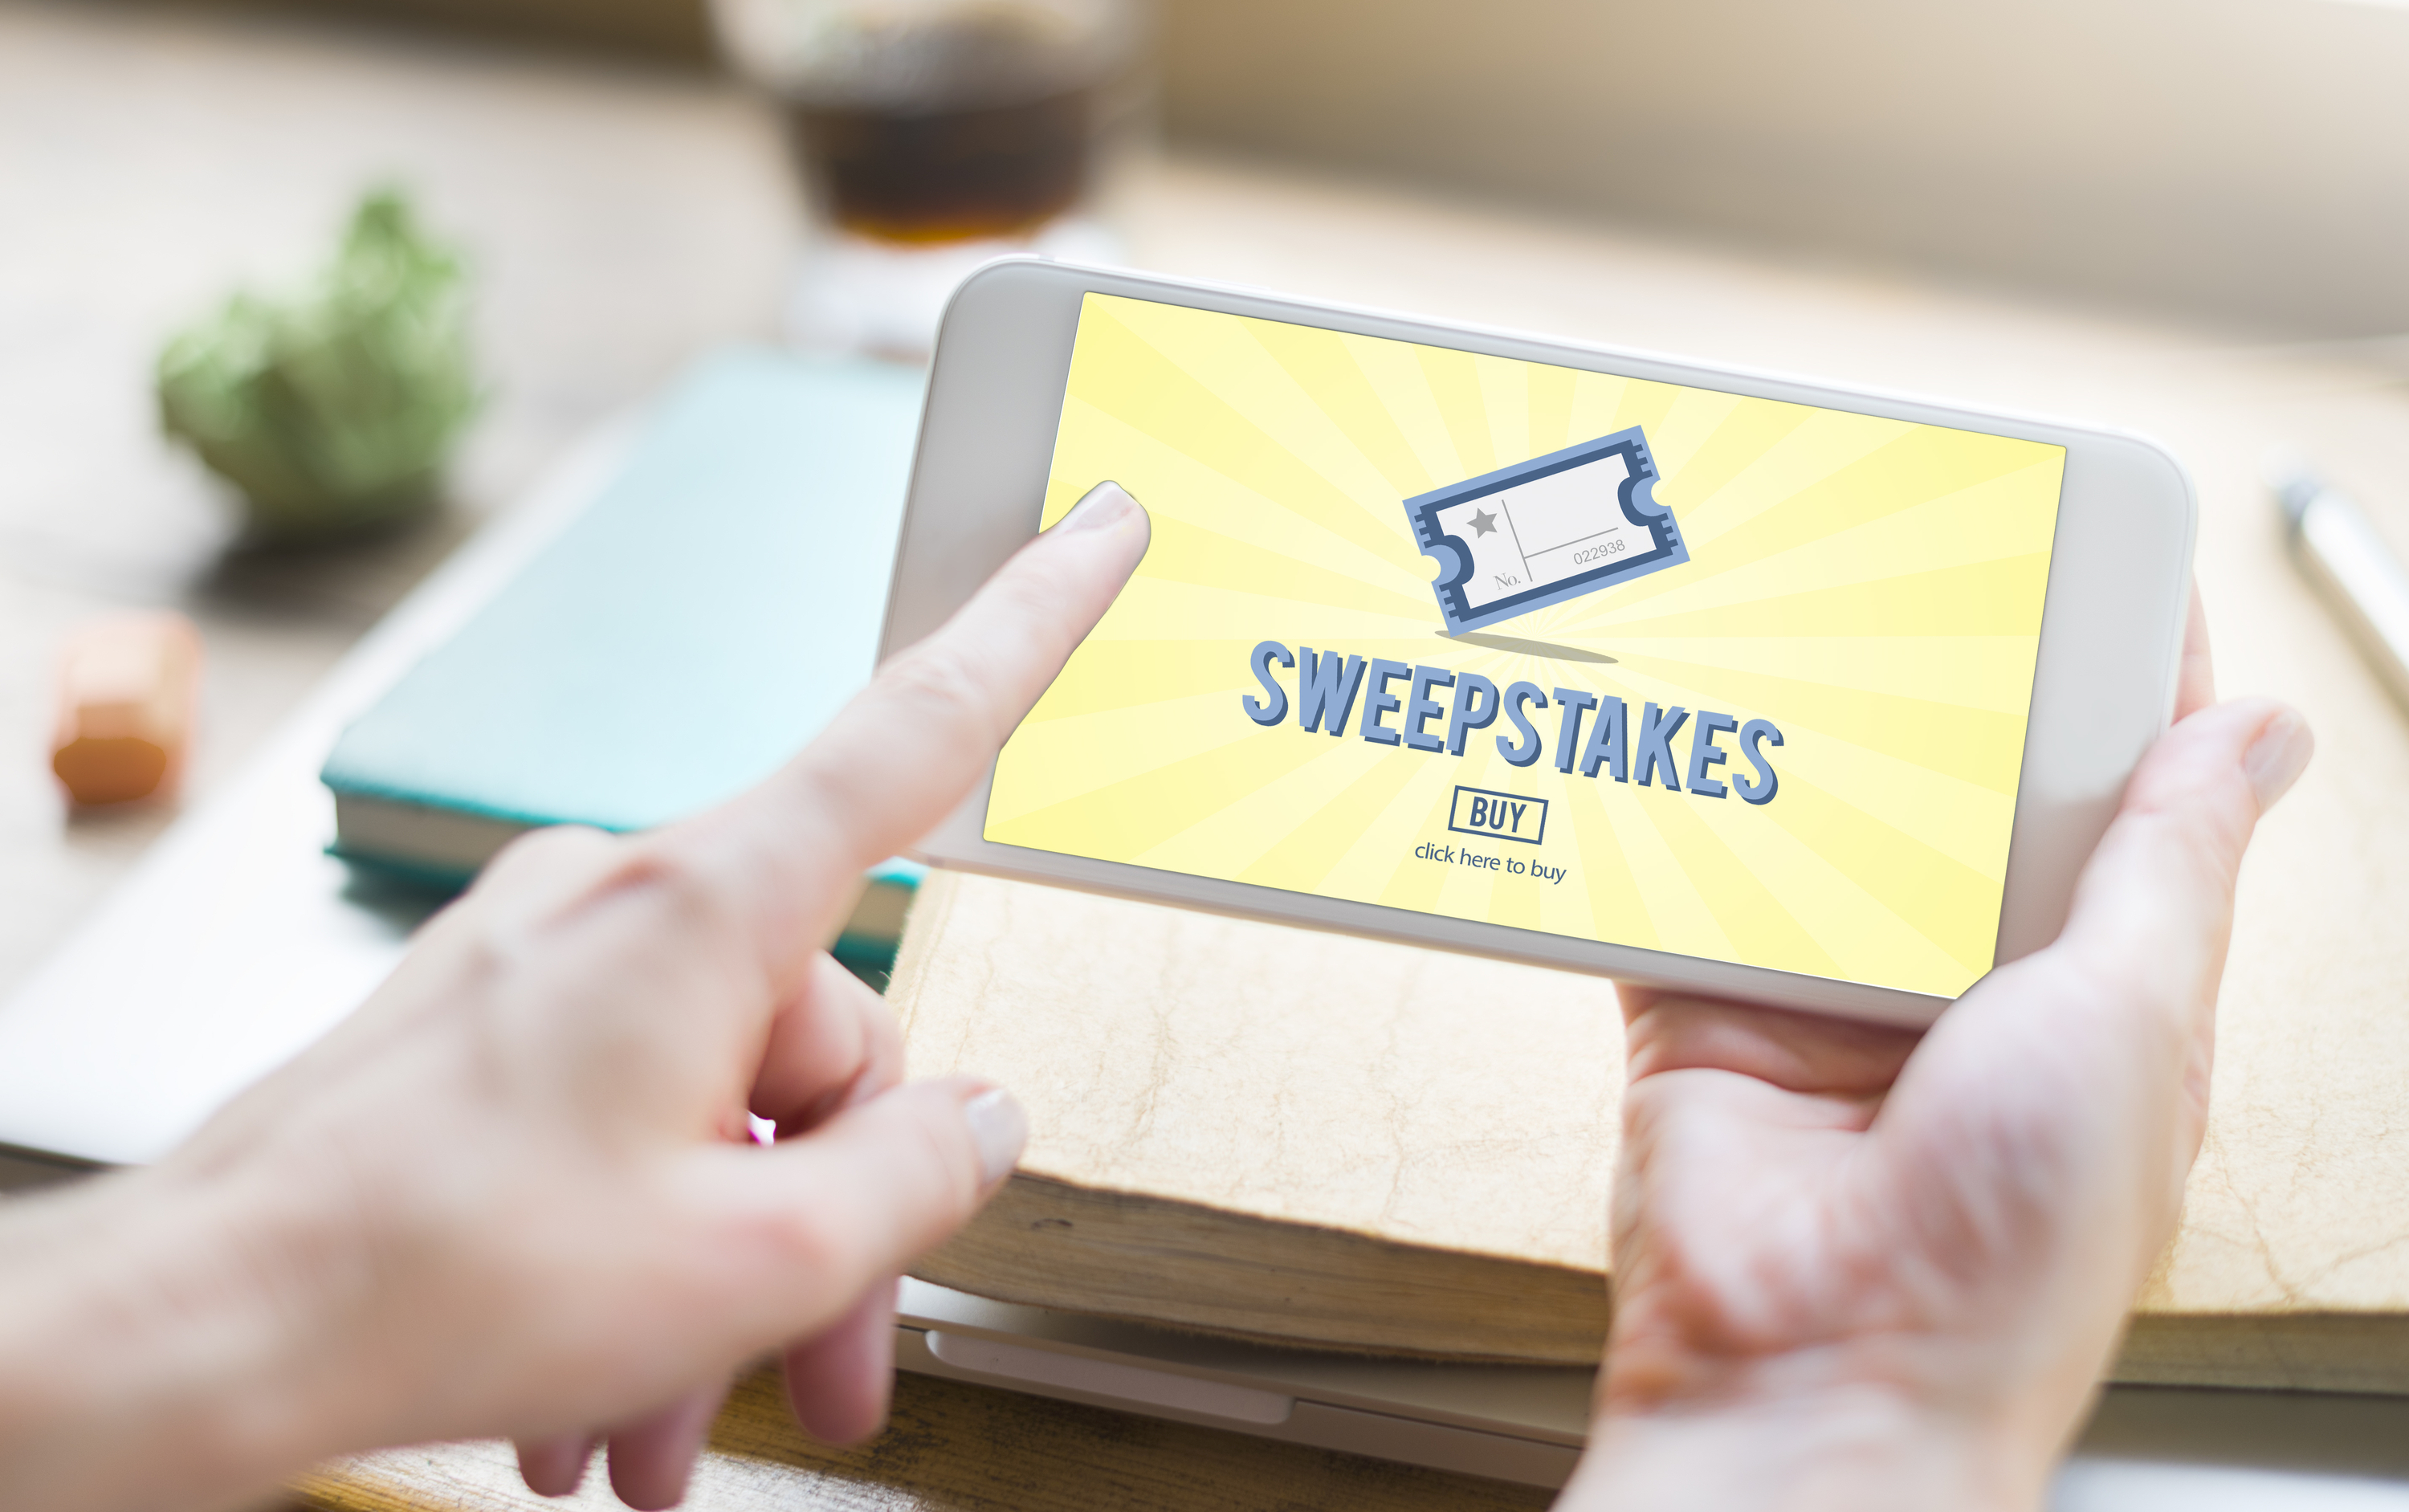 better homes and gardens | sweepstakes | giveaways | how to win | how to get lucky | how to win sweepstakes